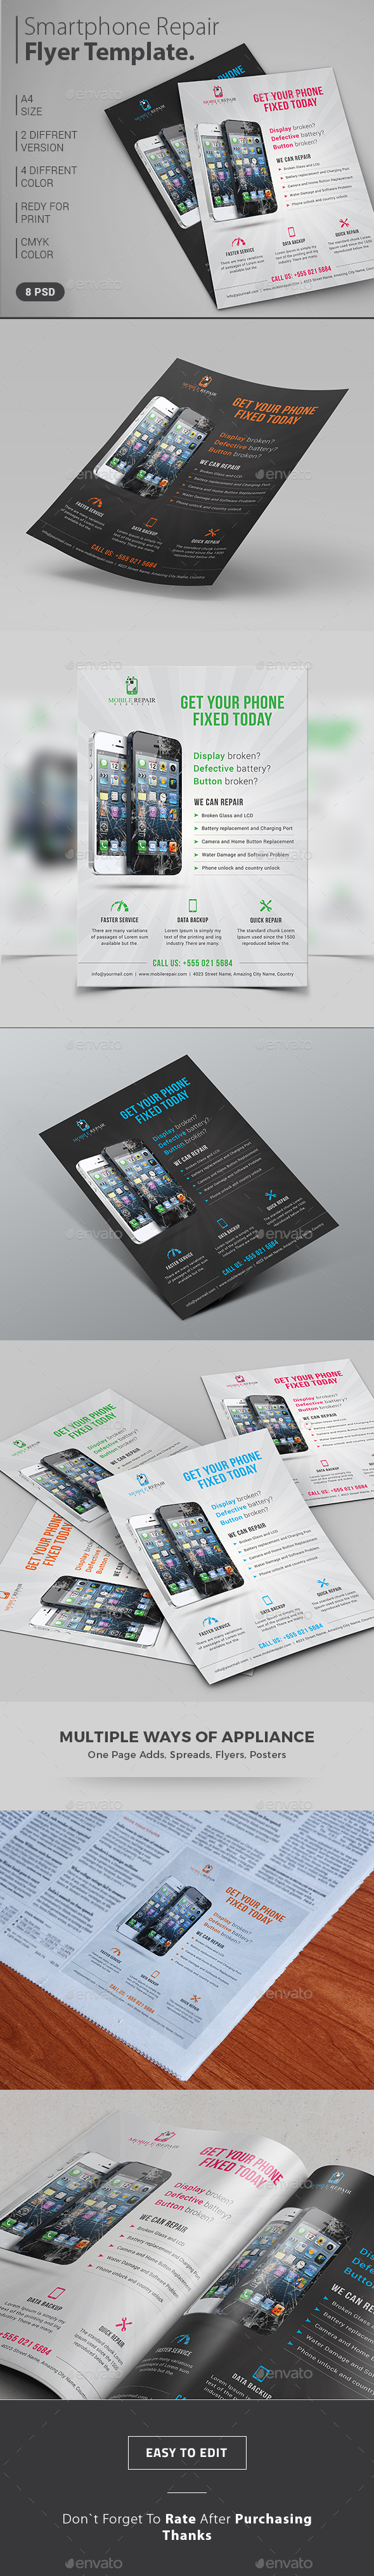 Smartphone Repair Service Flyer / Magazine Ad - Commerce Flyers